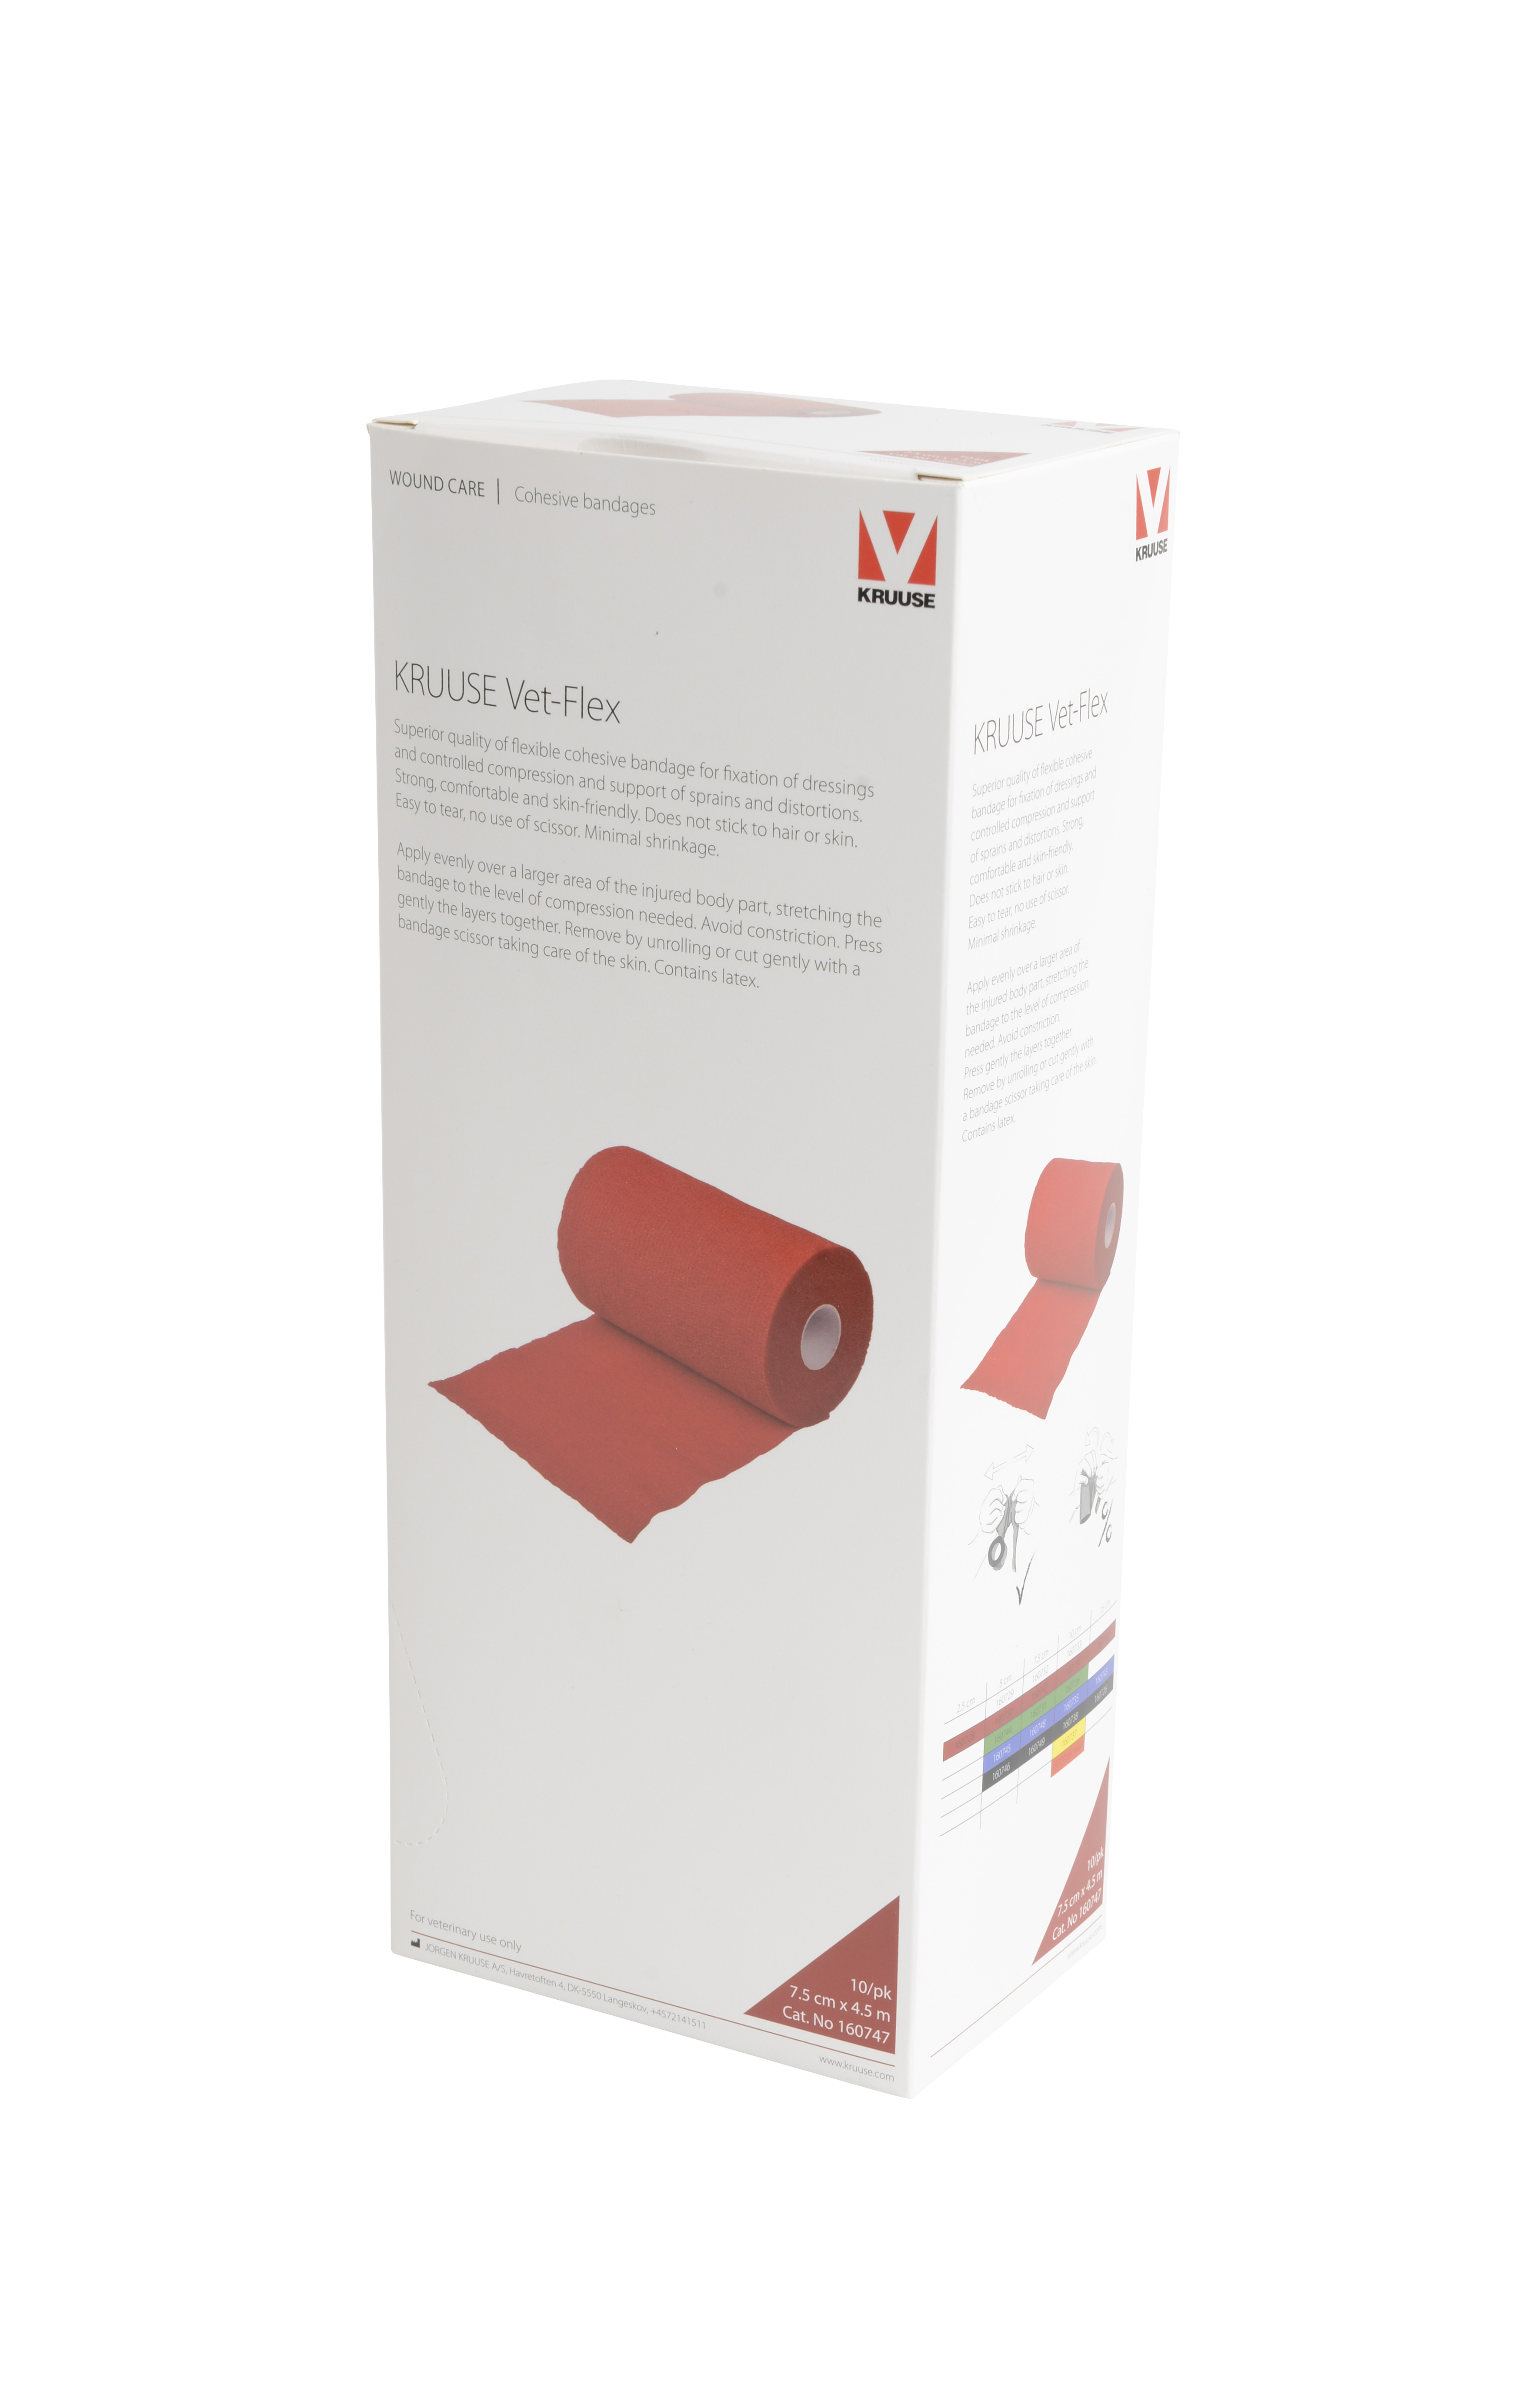 KRUUSE Vet-Flex 7.5 cm x 4.5 m, red, 10/pk